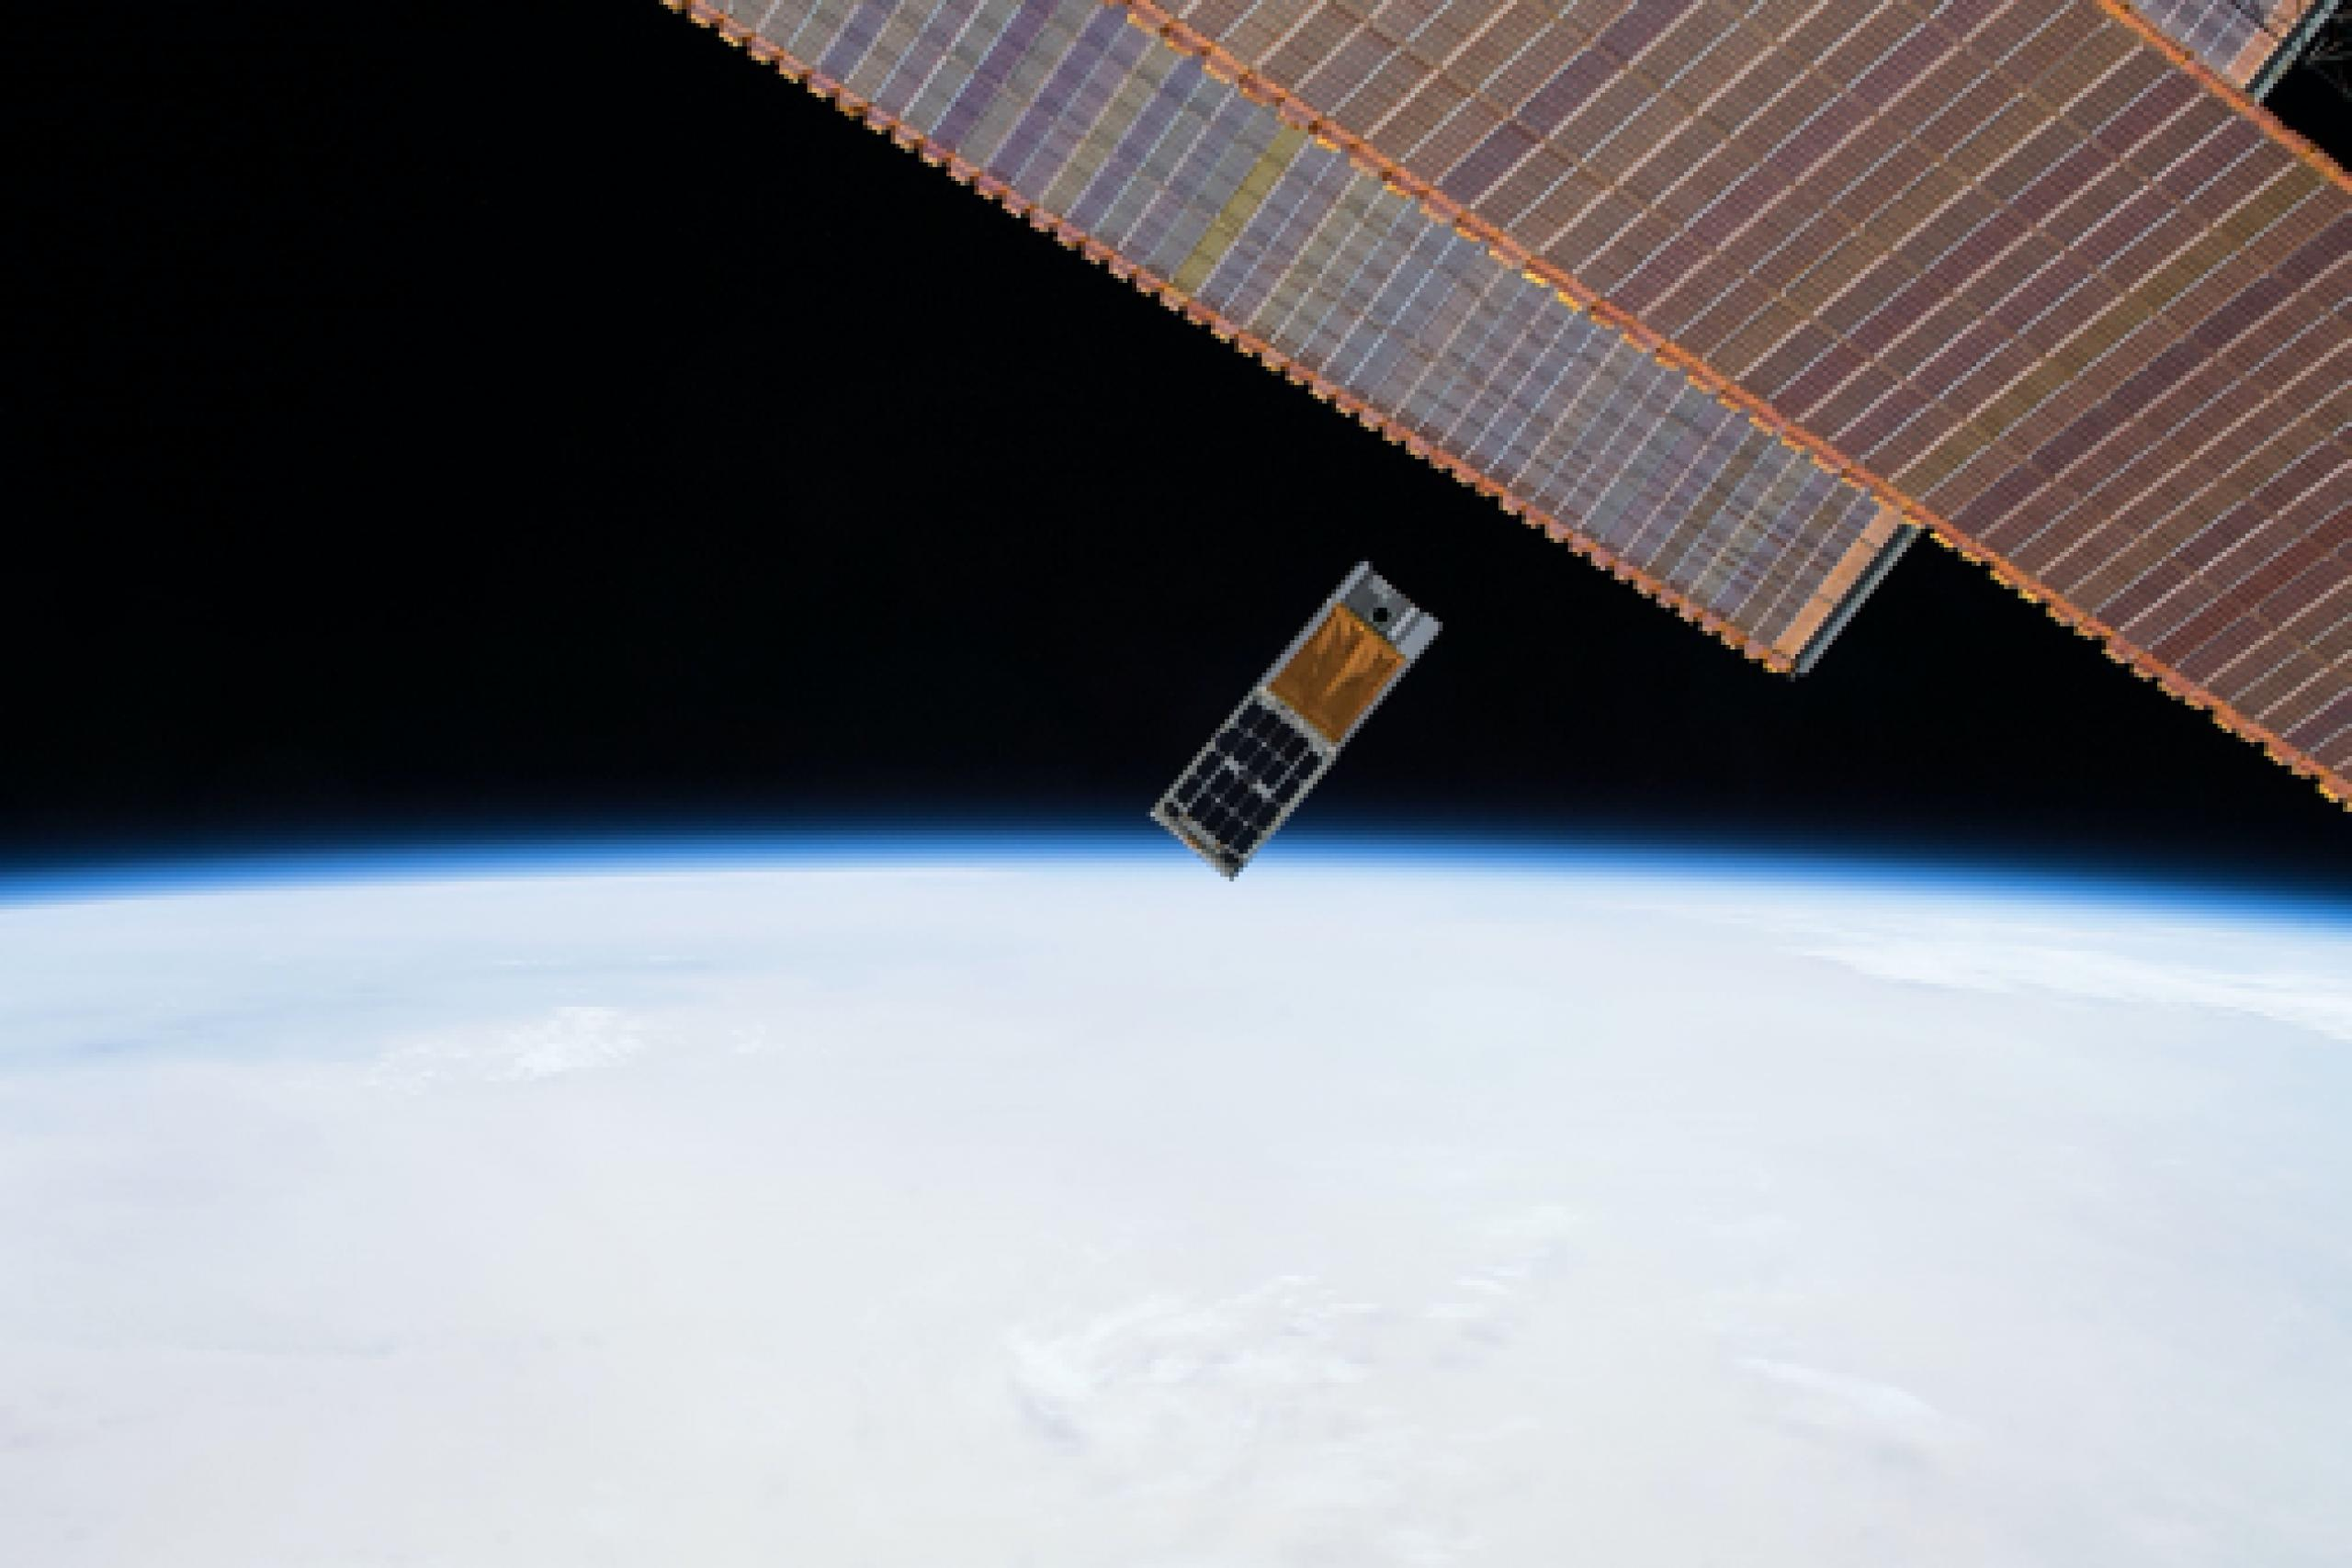 Photo of the HaloSat hardware box after being deployed from the ISS; the ISS solar arrays are to the right with Earth in the background.